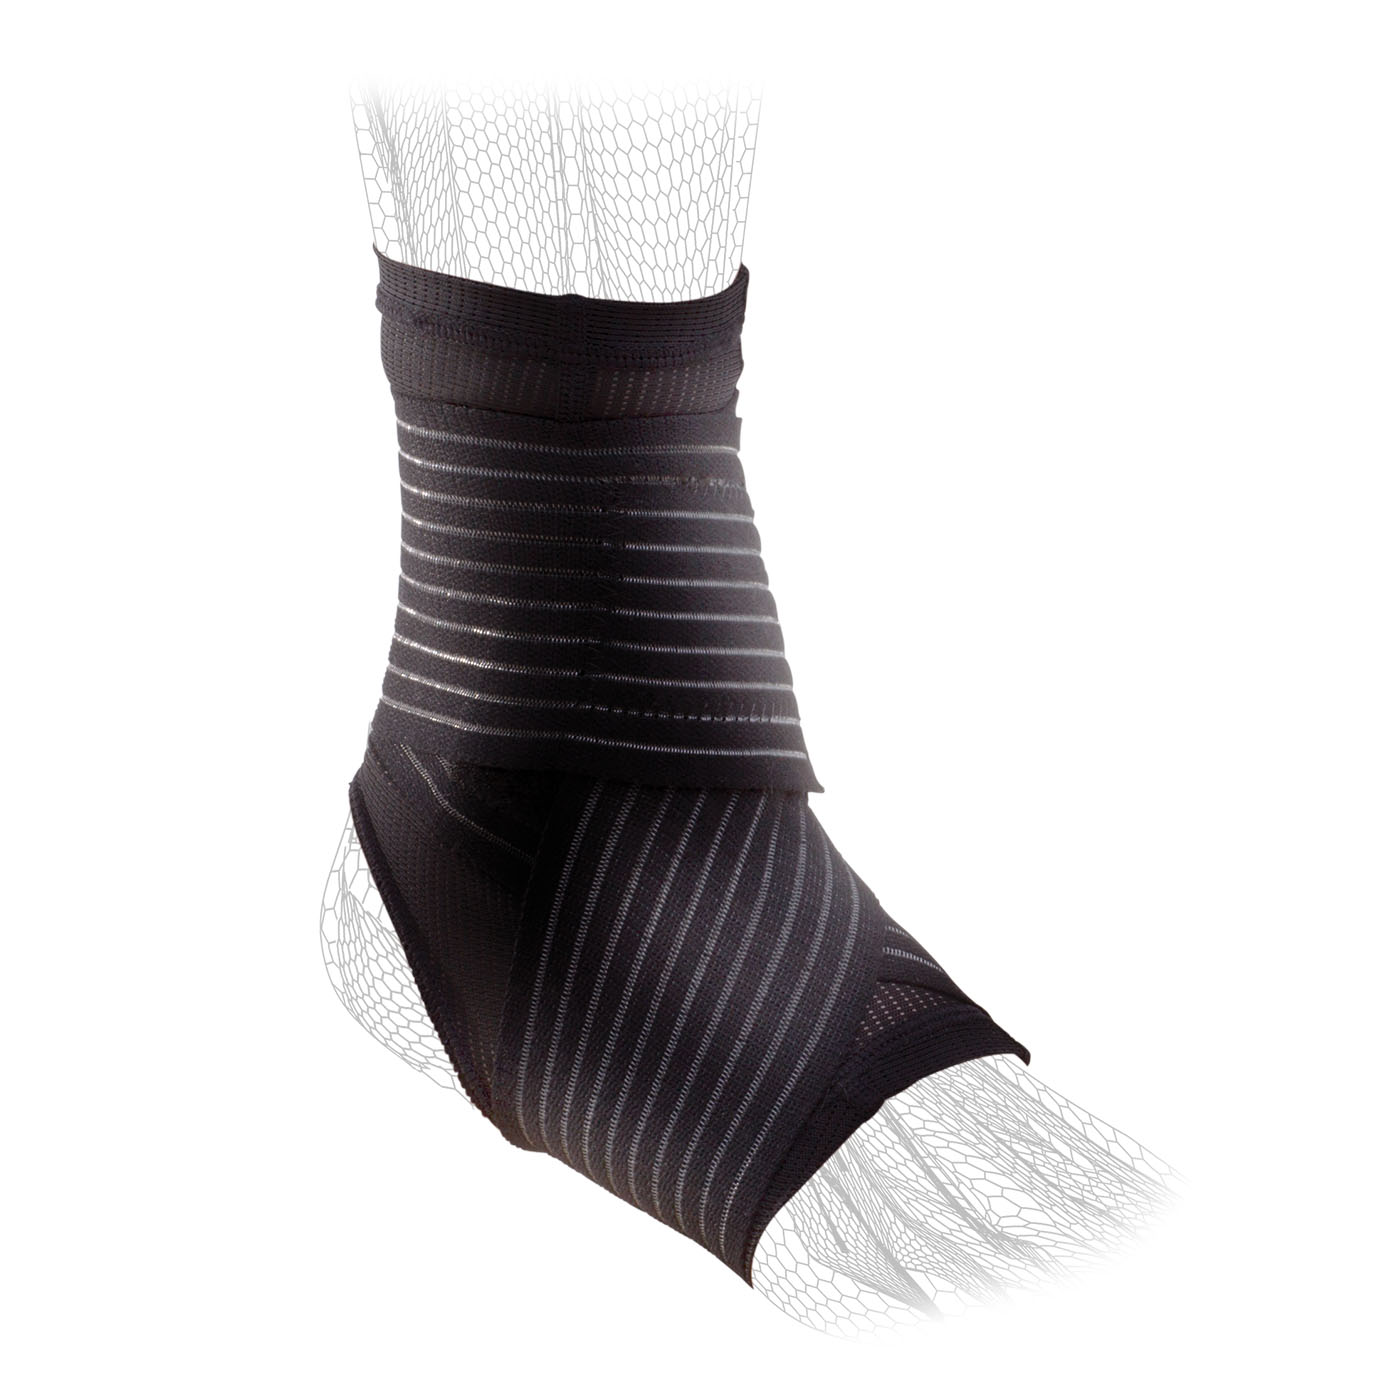 DonJoy Performance Figure 8 Ankle Sleeve- Mesh, Compression,